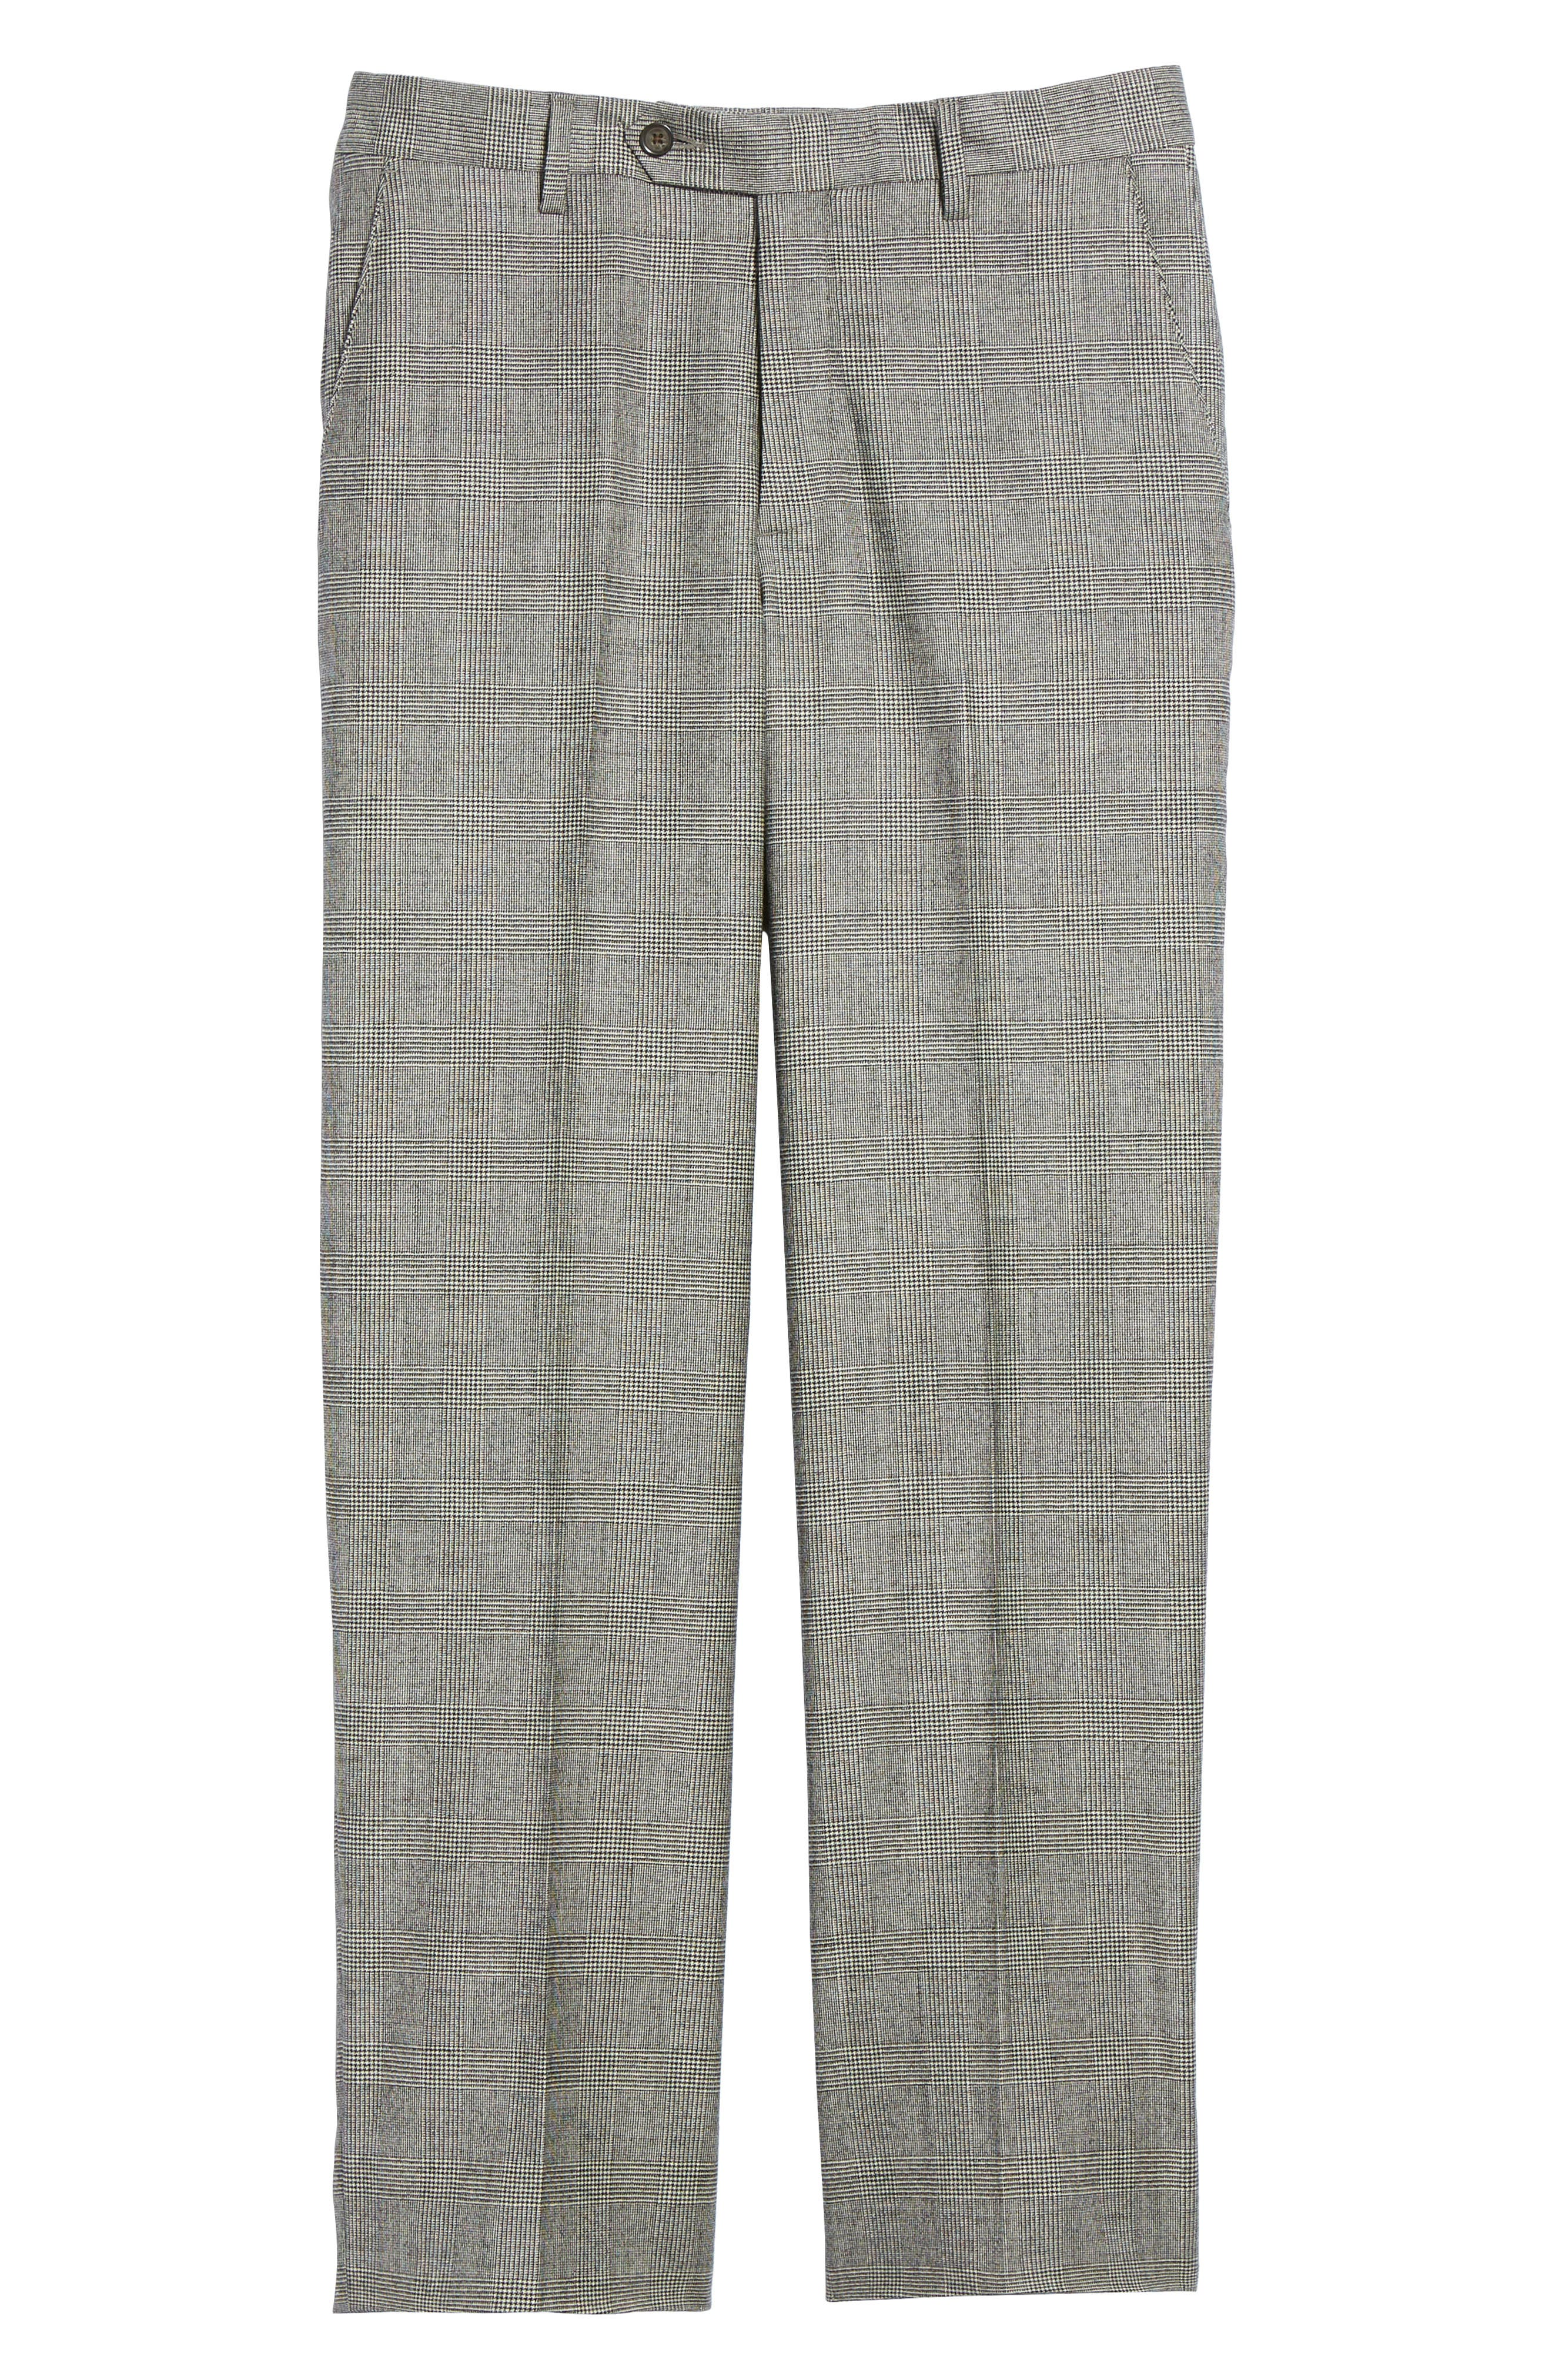 Flat Front Stretch Plaid Wool Trousers,                             Alternate thumbnail 6, color,                             BLACK/ WHITE